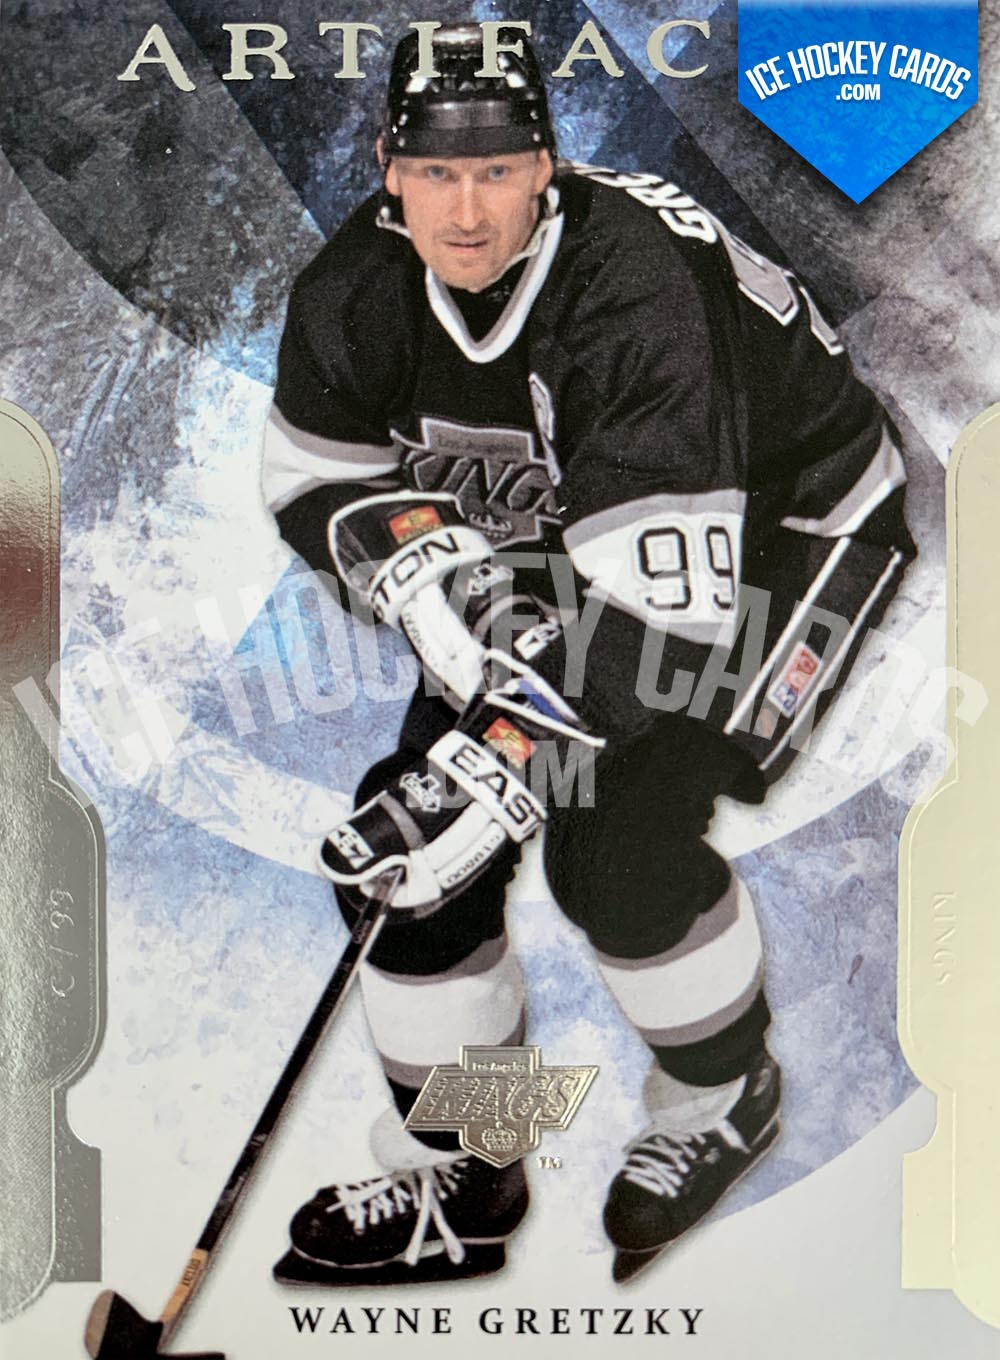 Upper Deck - Artifacts 2011-12 - Wayne Gretzky Base Card